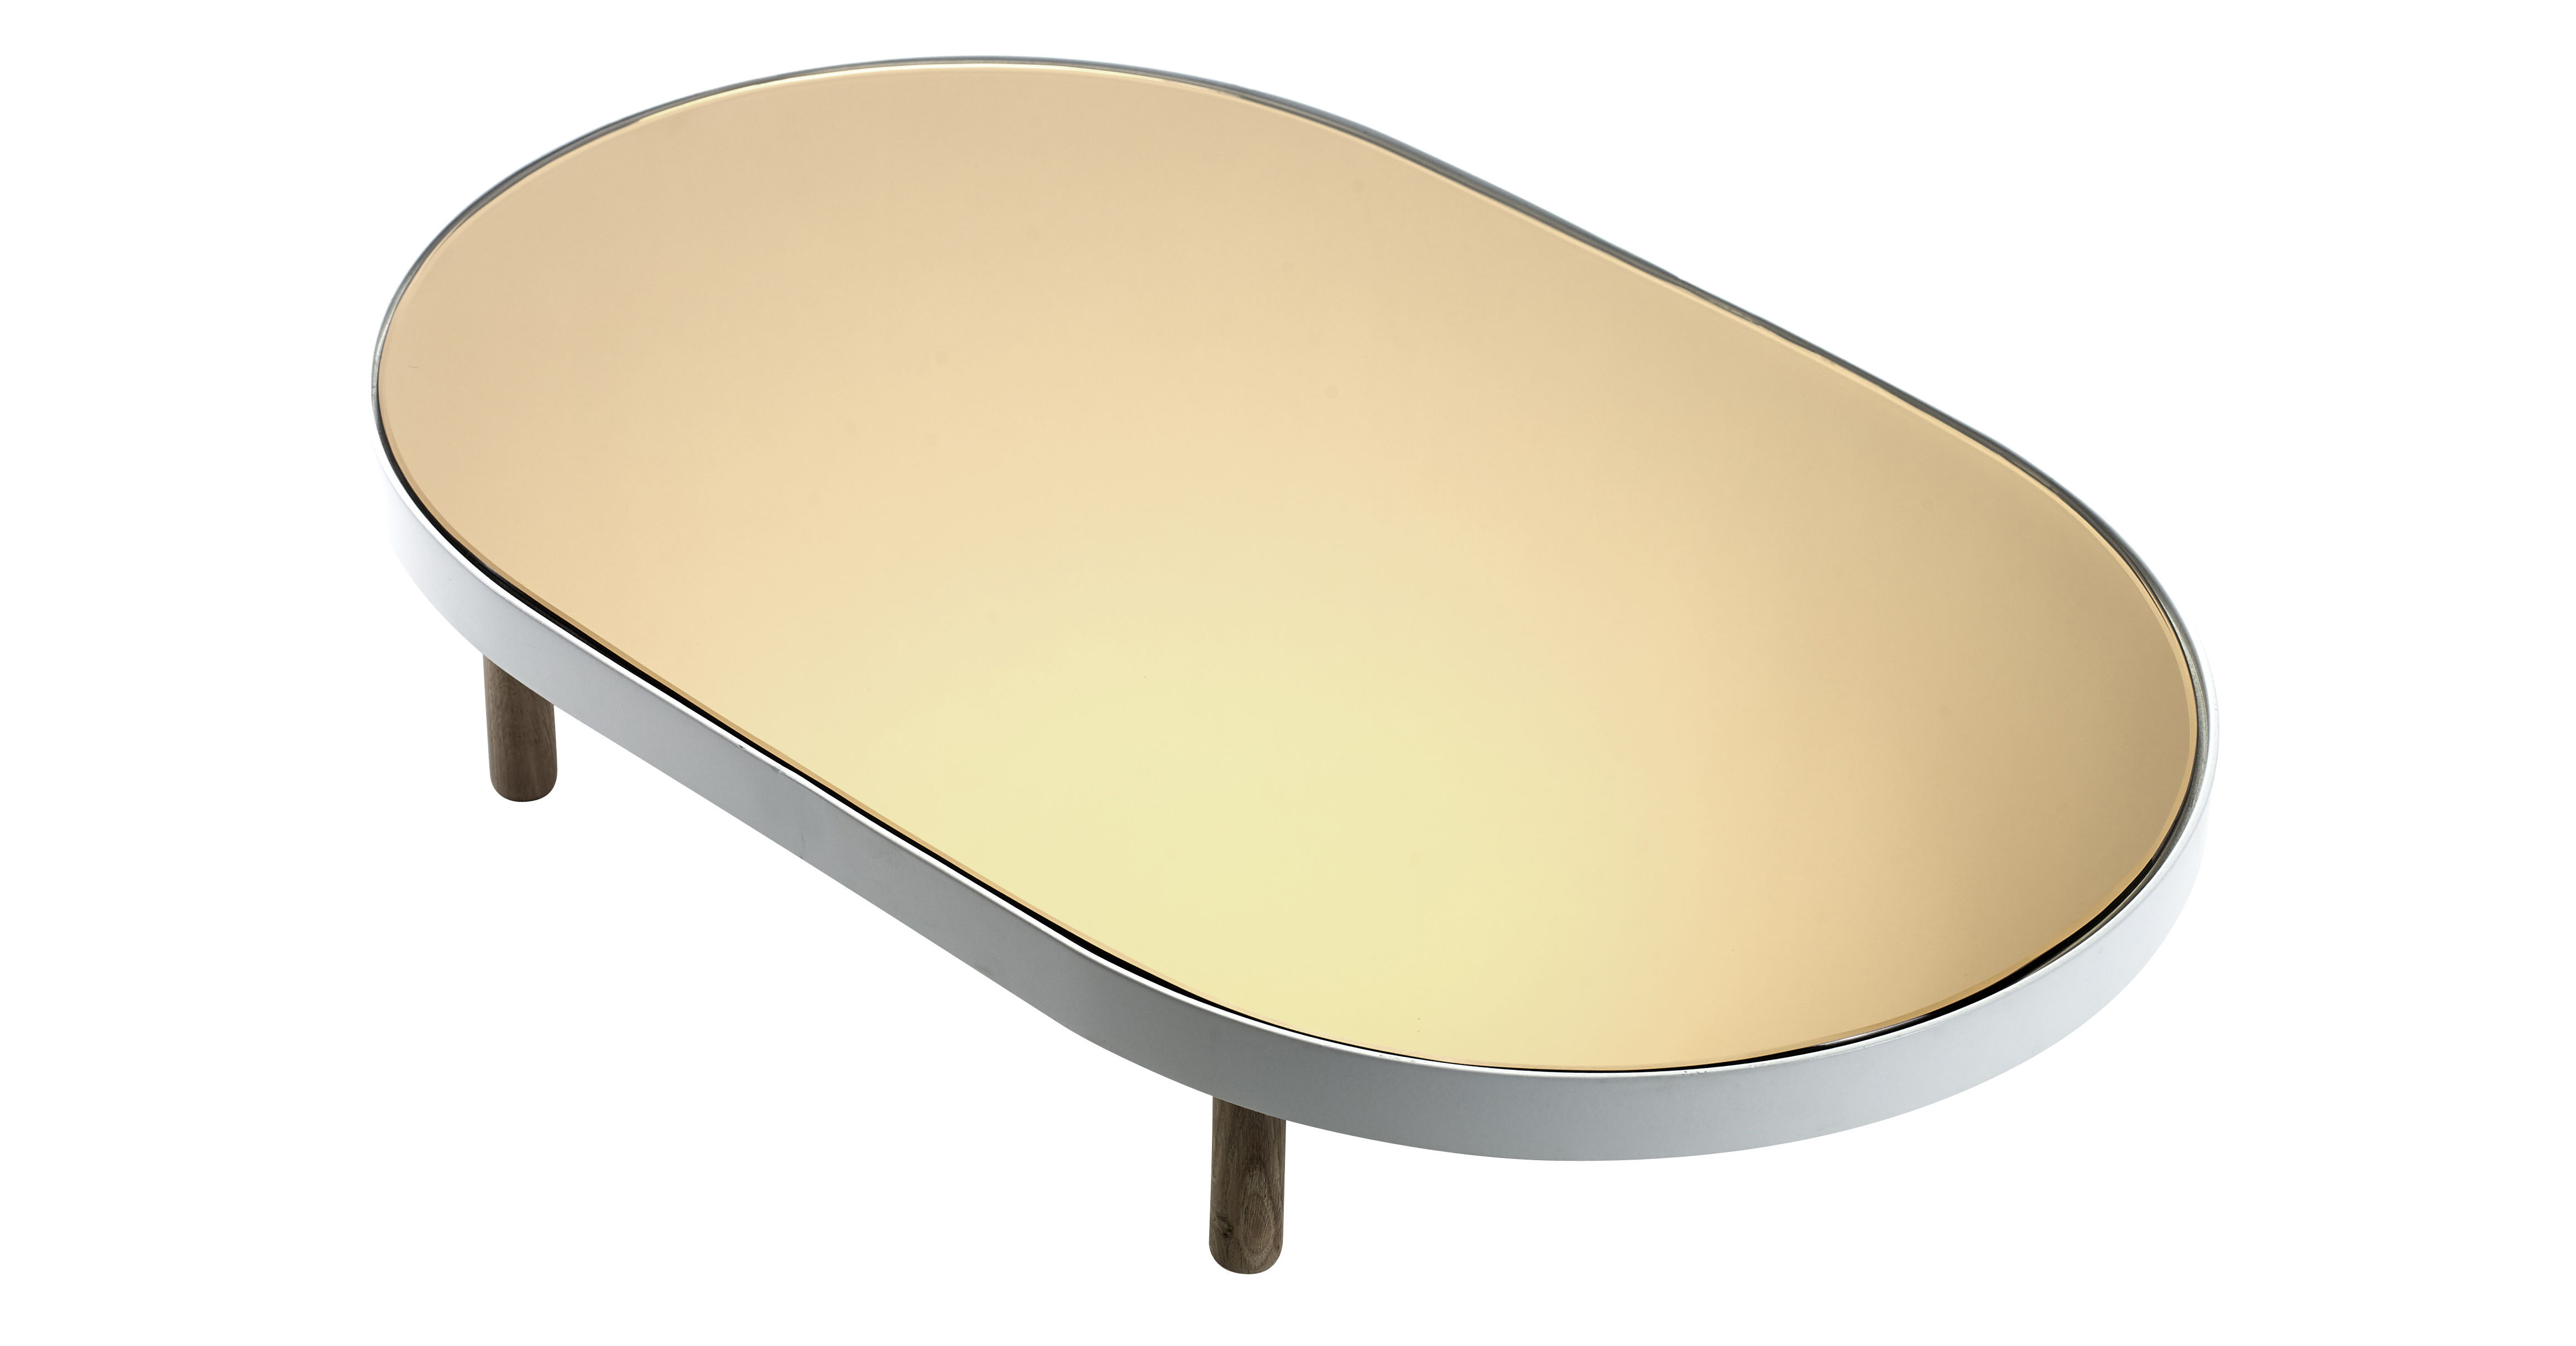 Tableware - Trays - Reflect Tray - Ovale Mirror - 67 x 41 cm by Serax - White & coppered mirror / Xood legs - Glass, Natural wood, Painted metal